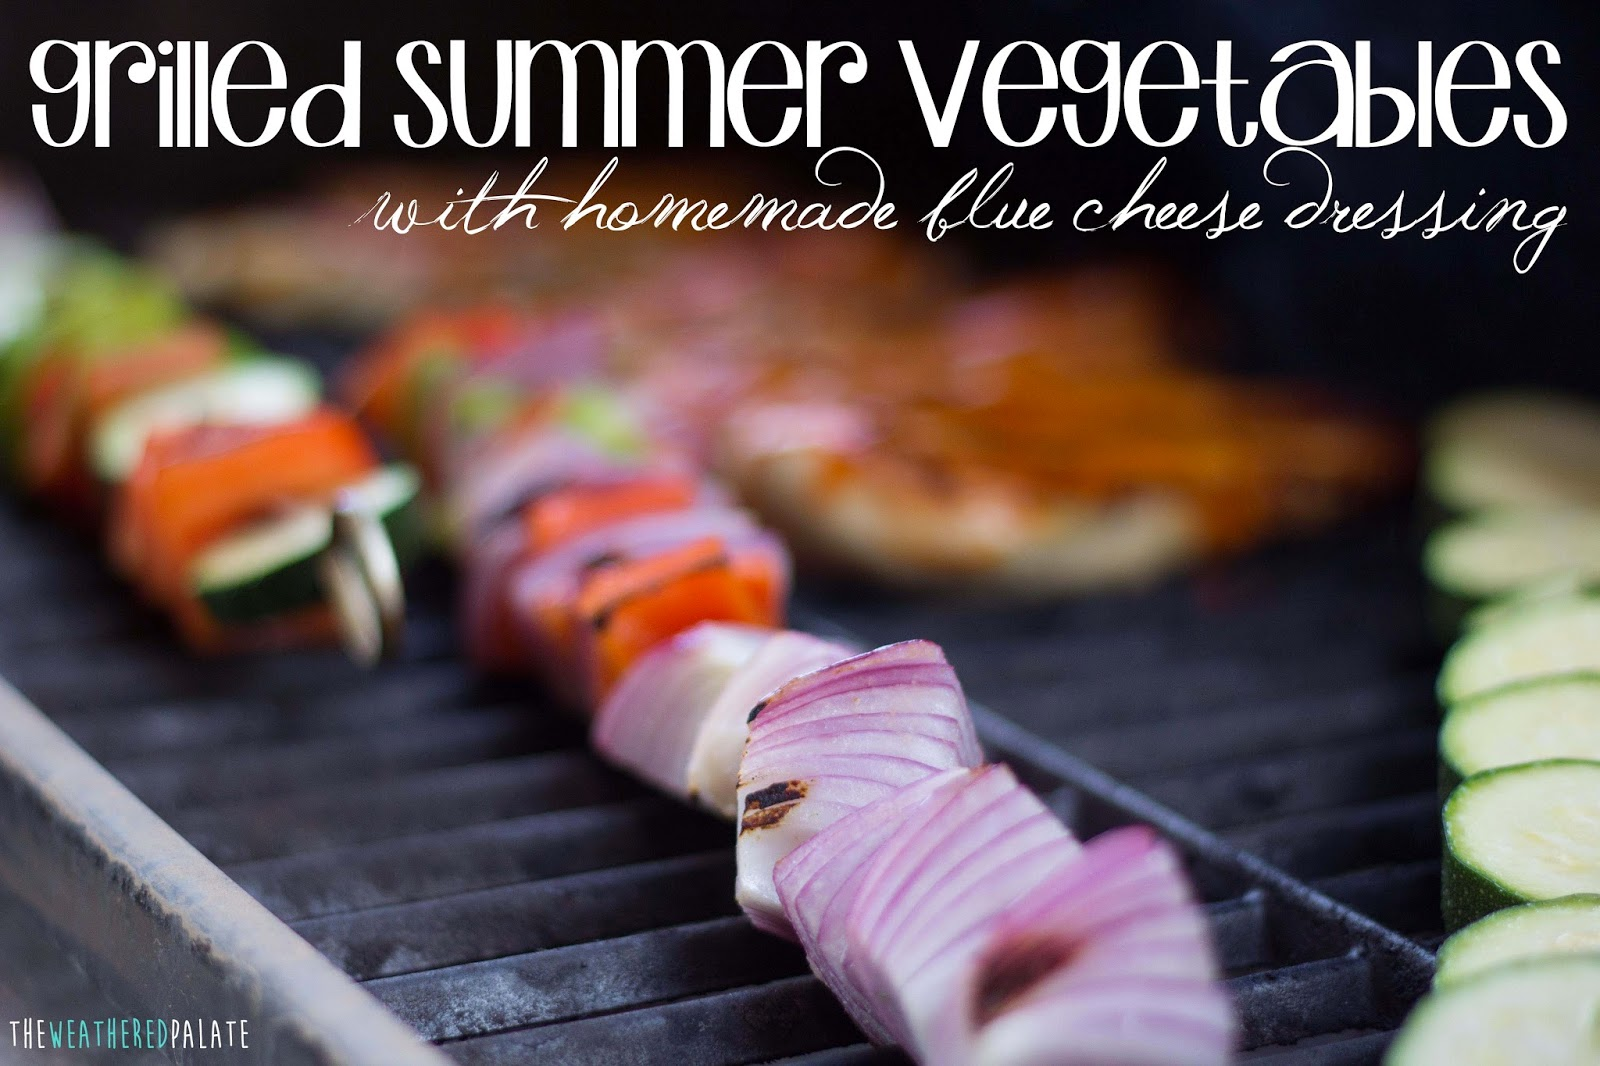 http://www.theweatheredpalate.com/2014/09/grilled-summer-vegetables-with-homemade.html